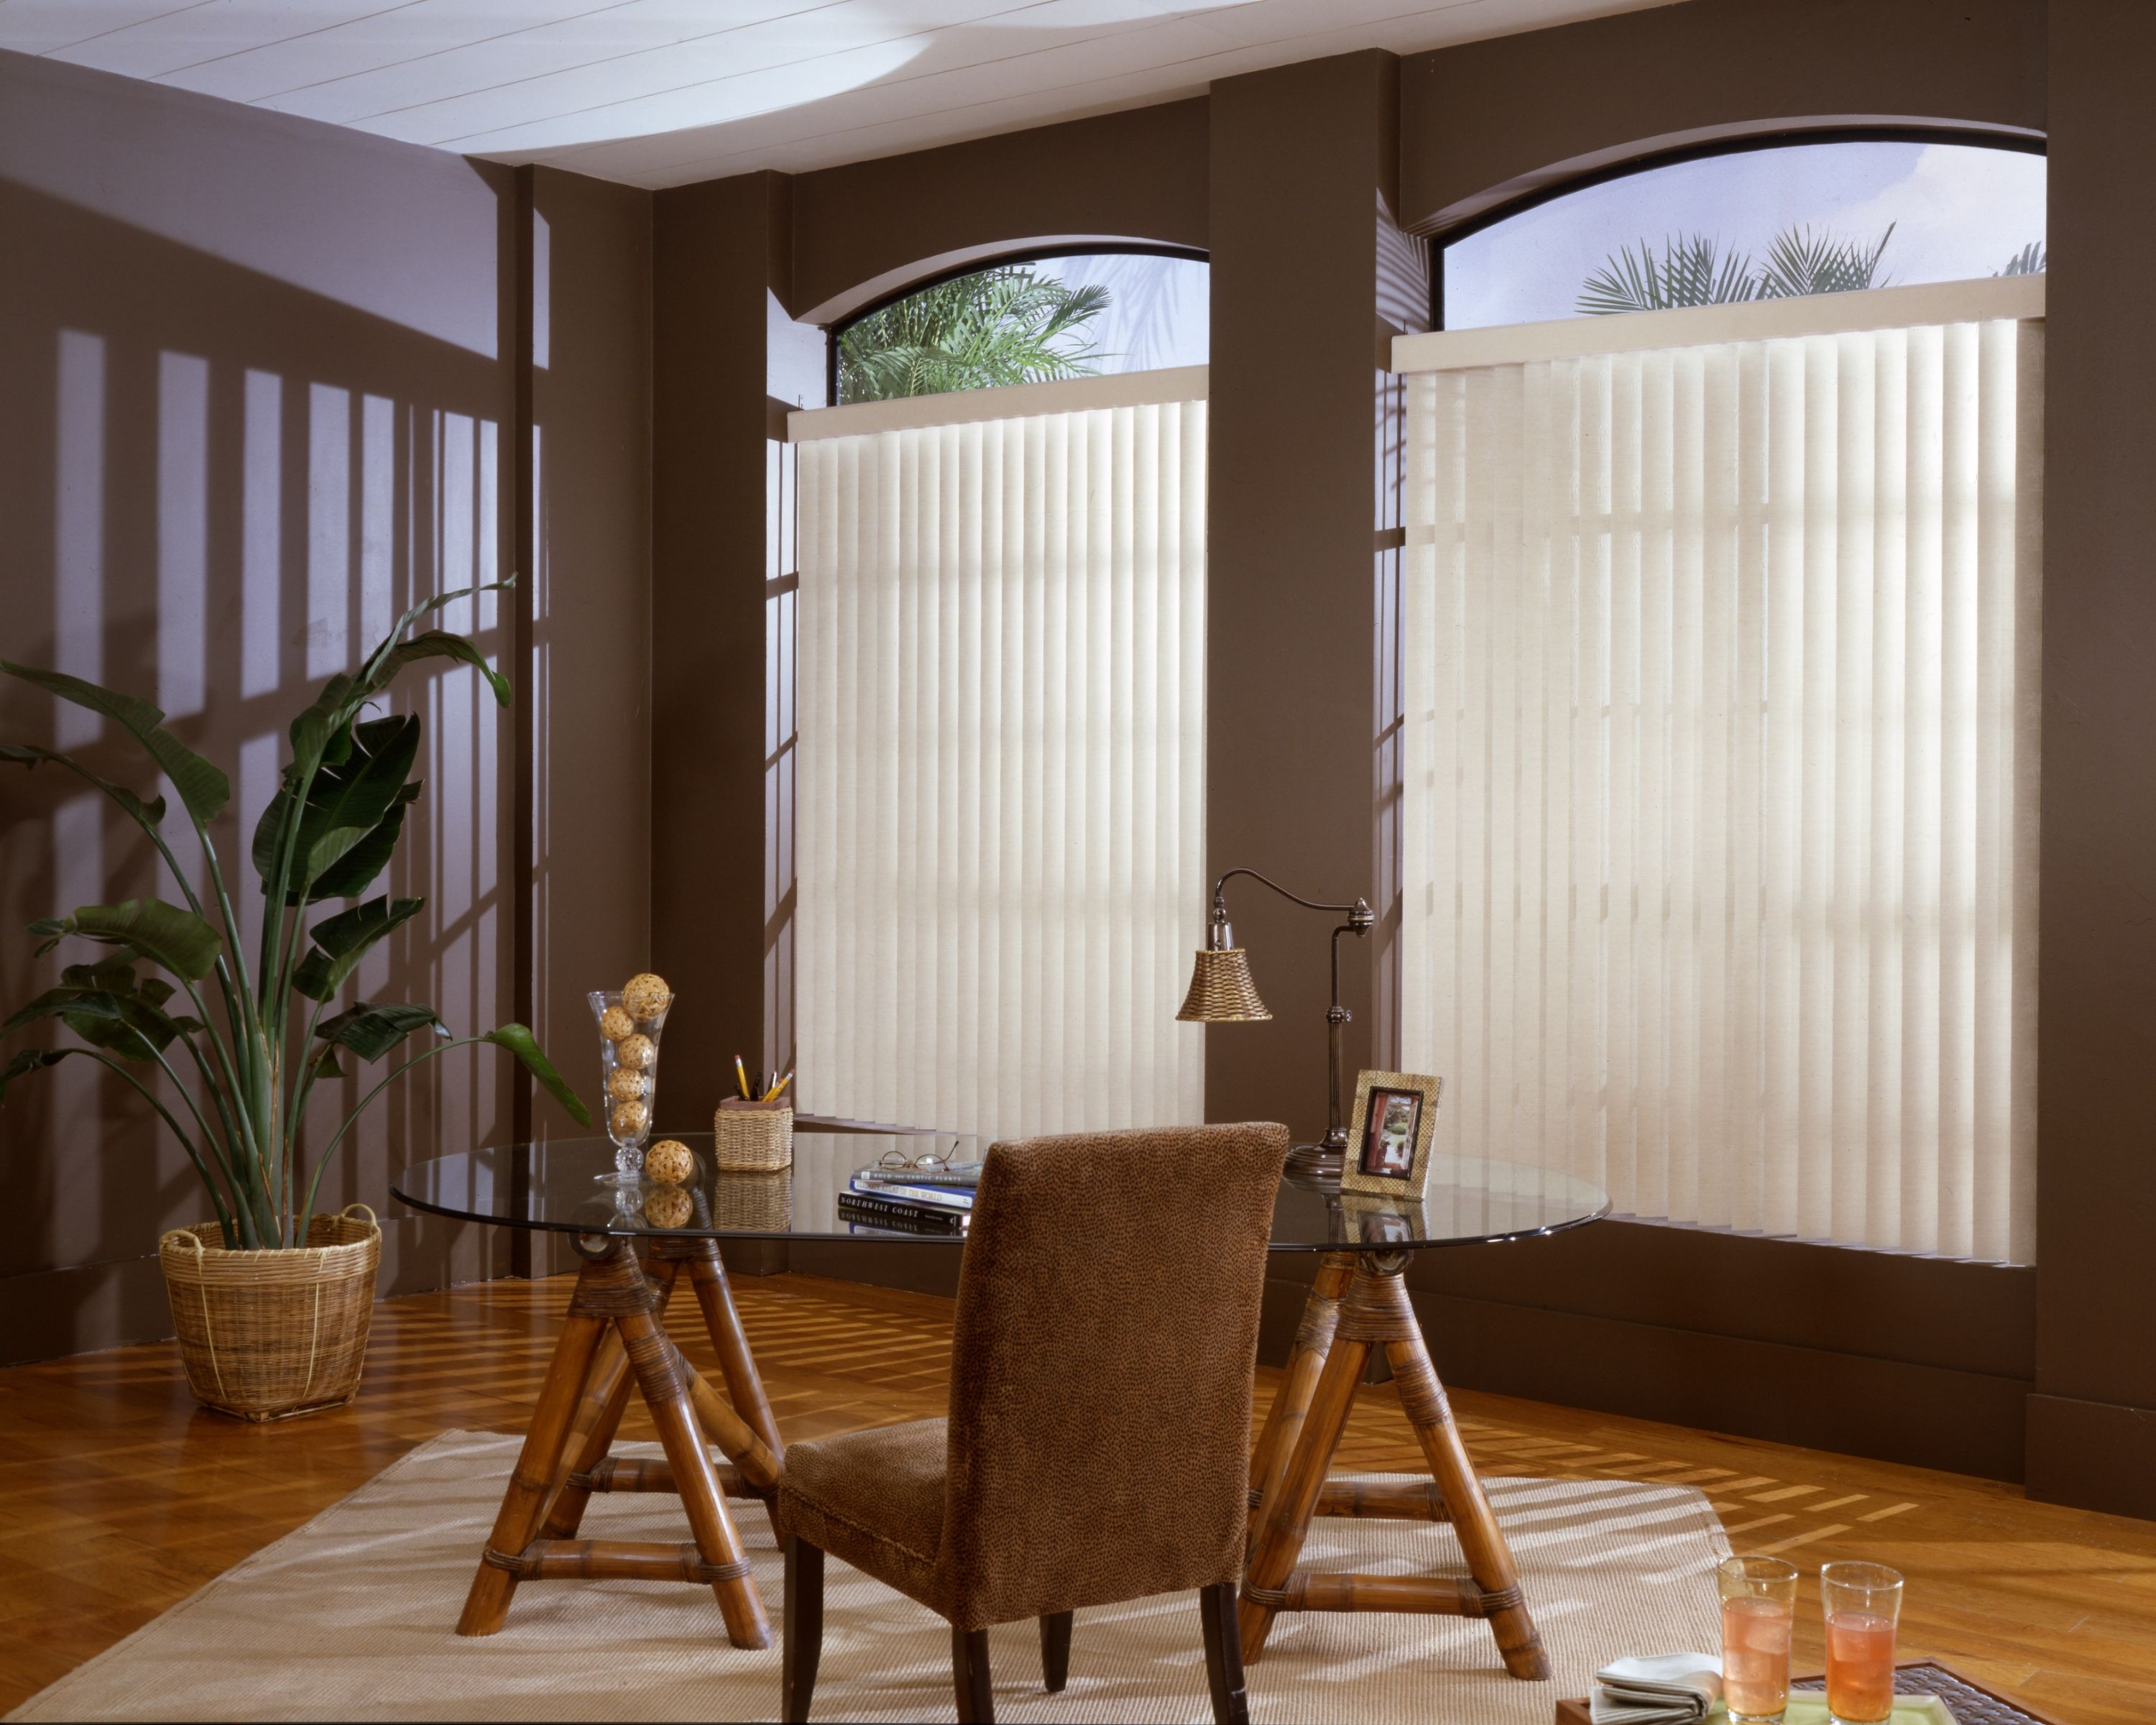 2400 #9B6330  French Doors High Window Curtains. CIY Temporary Window Covering! Need wallpaper 3ft French Doors 46653000